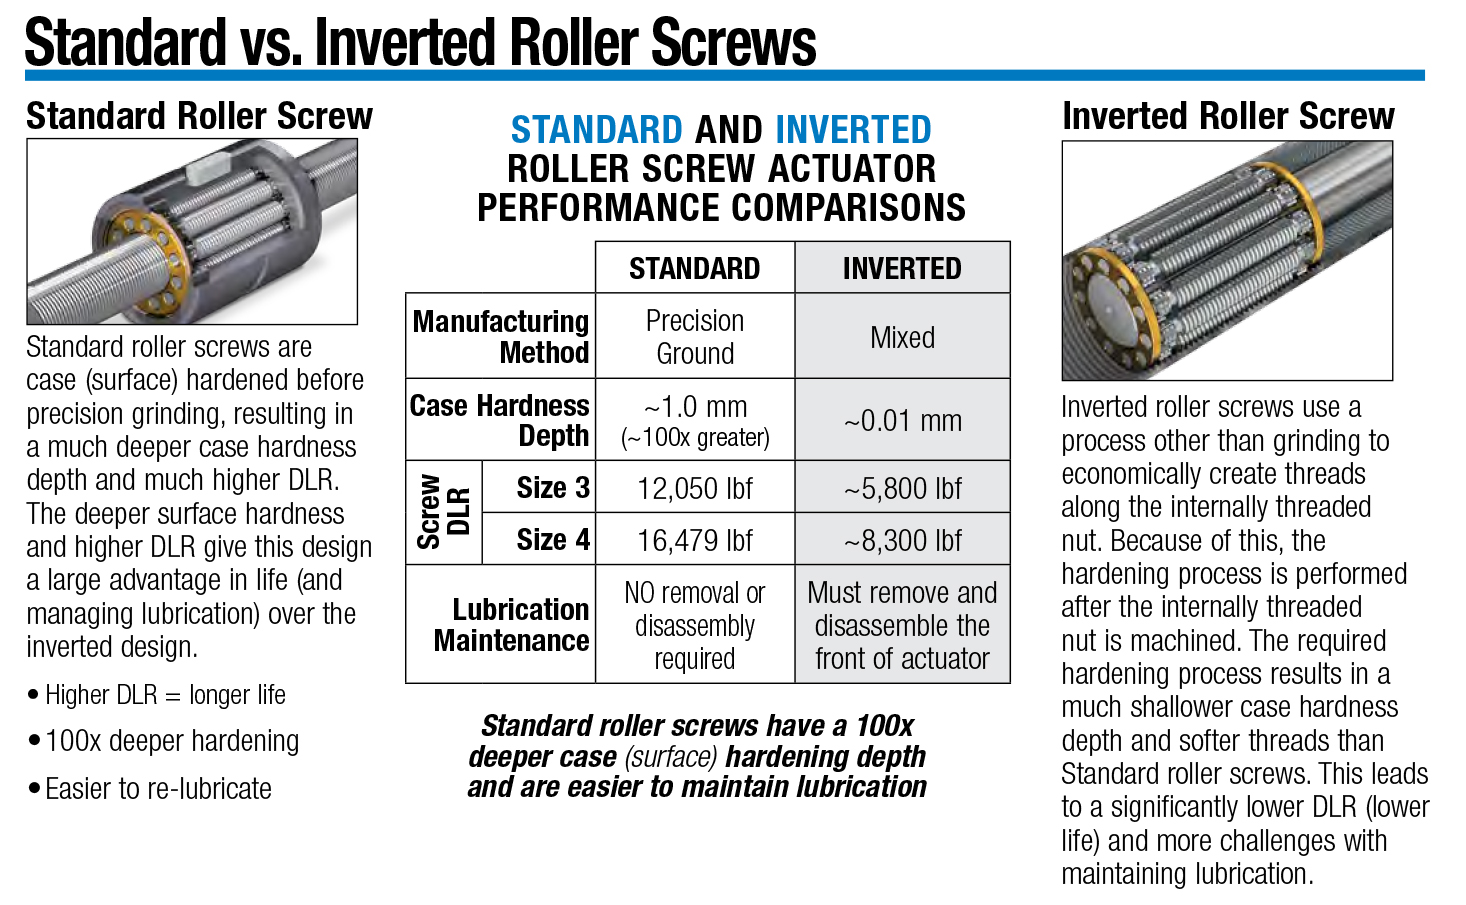 Standard Roller Screws vs. Inverted Roller Screws